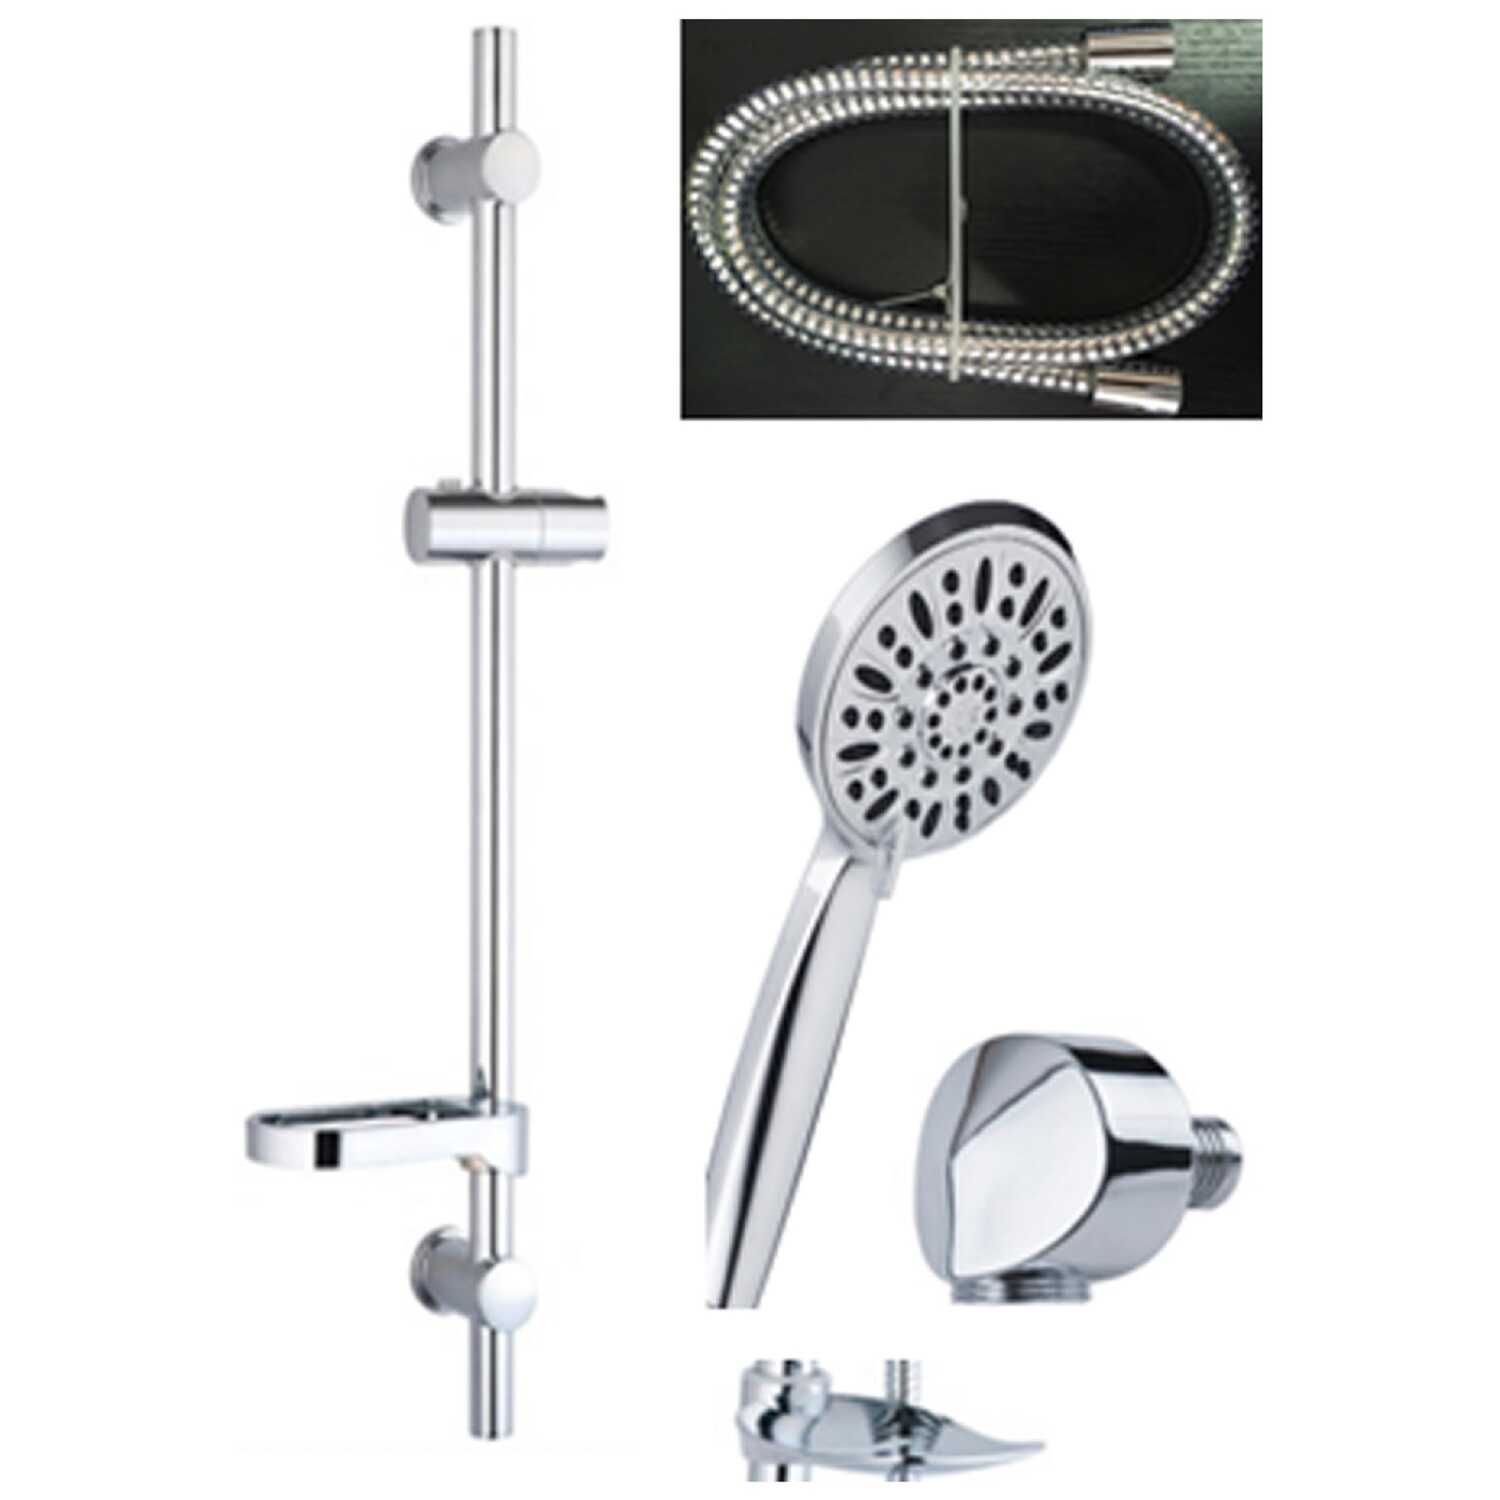 OakBrook  Chrome  3 settings Showerhead With Slide Bar  1.8 gpm